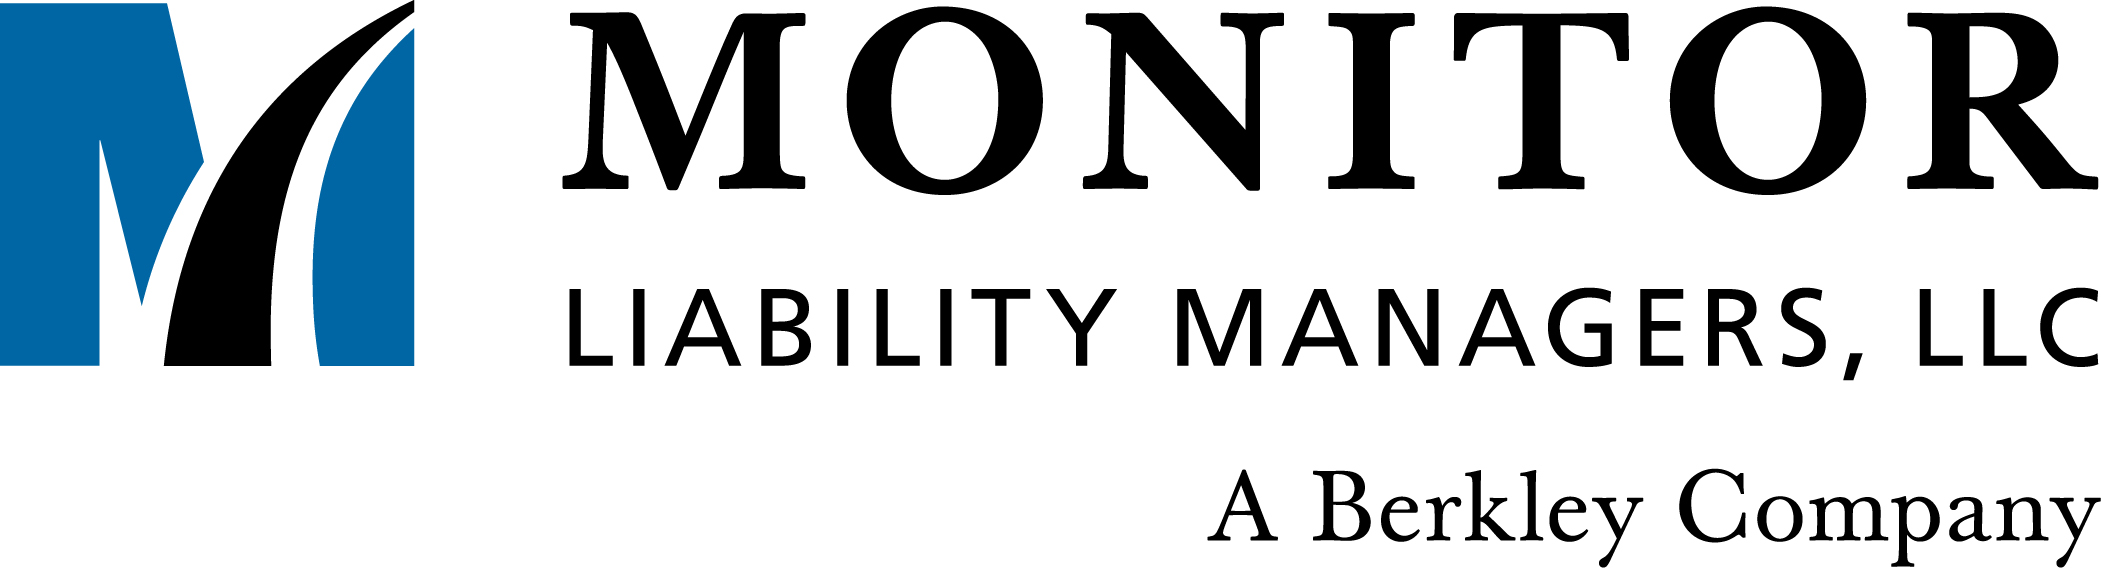 Monitor Liability Managers, Inc. Logo